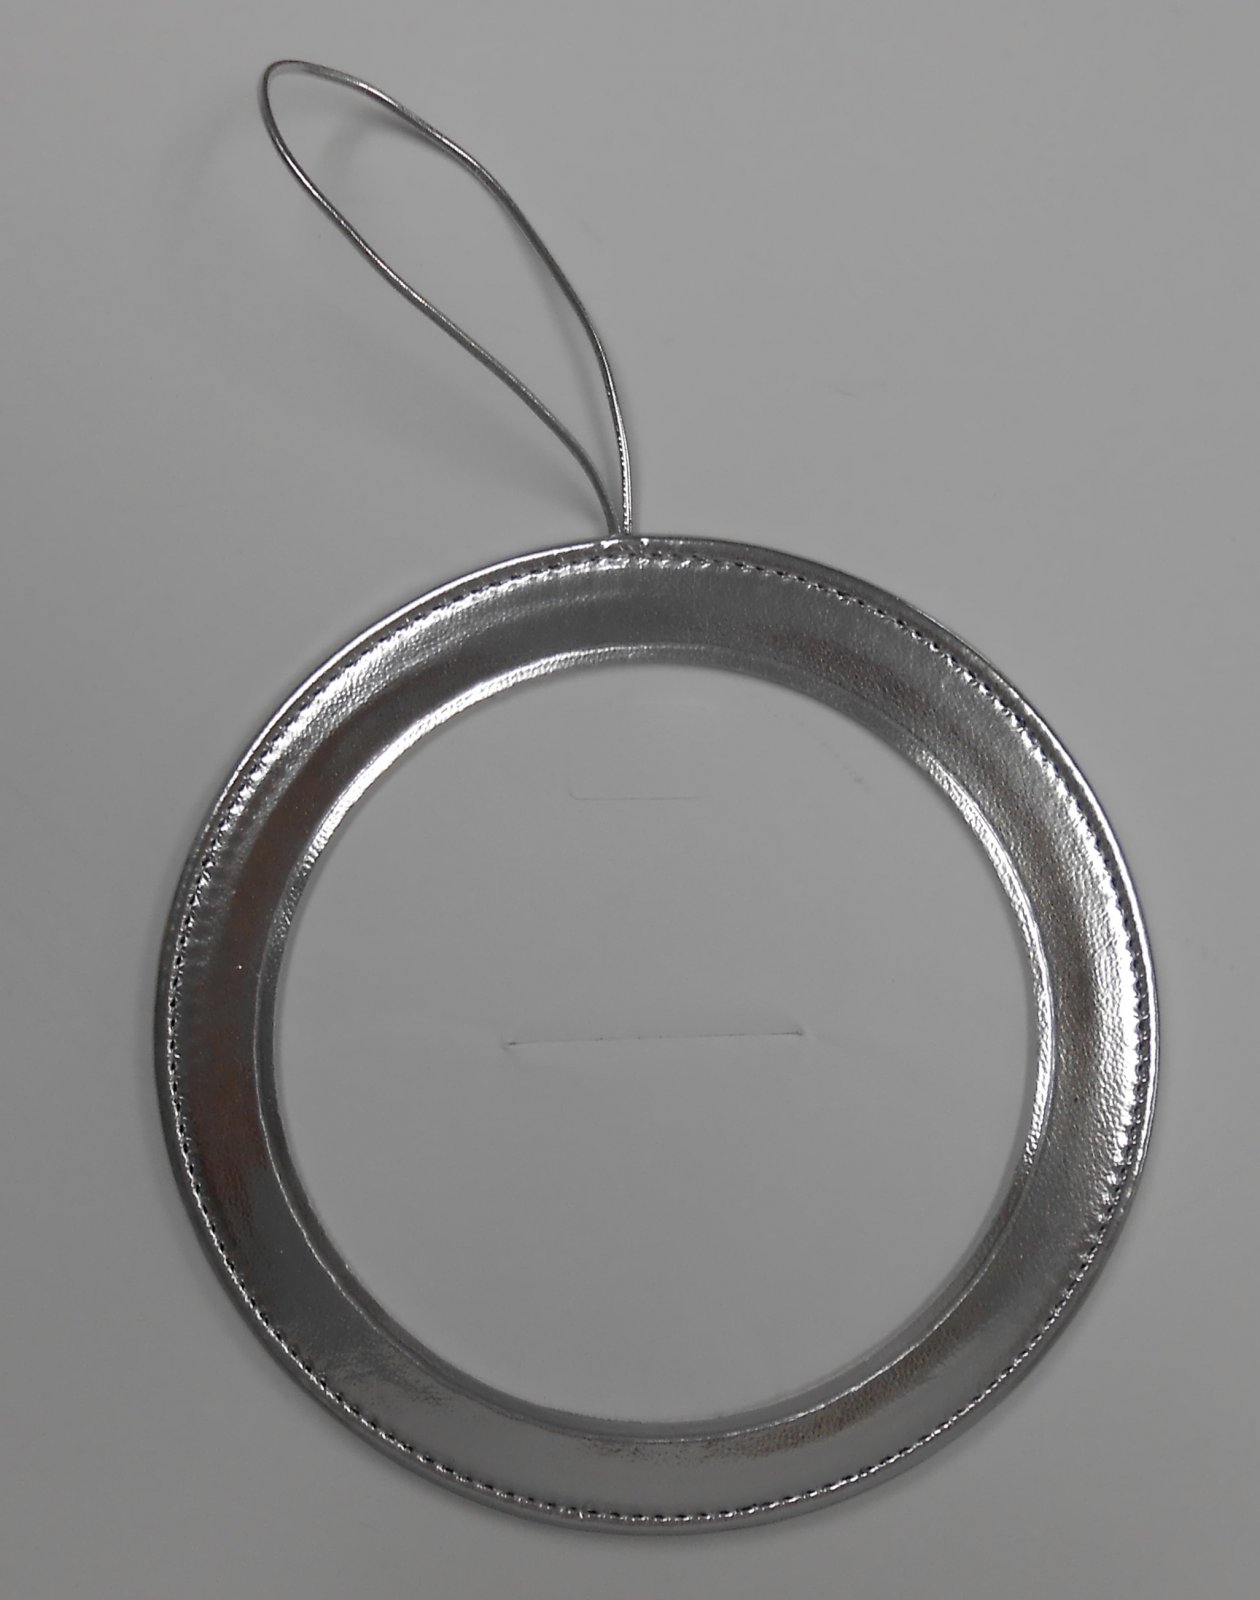 SIlver Magnetic Ornament/Coaster